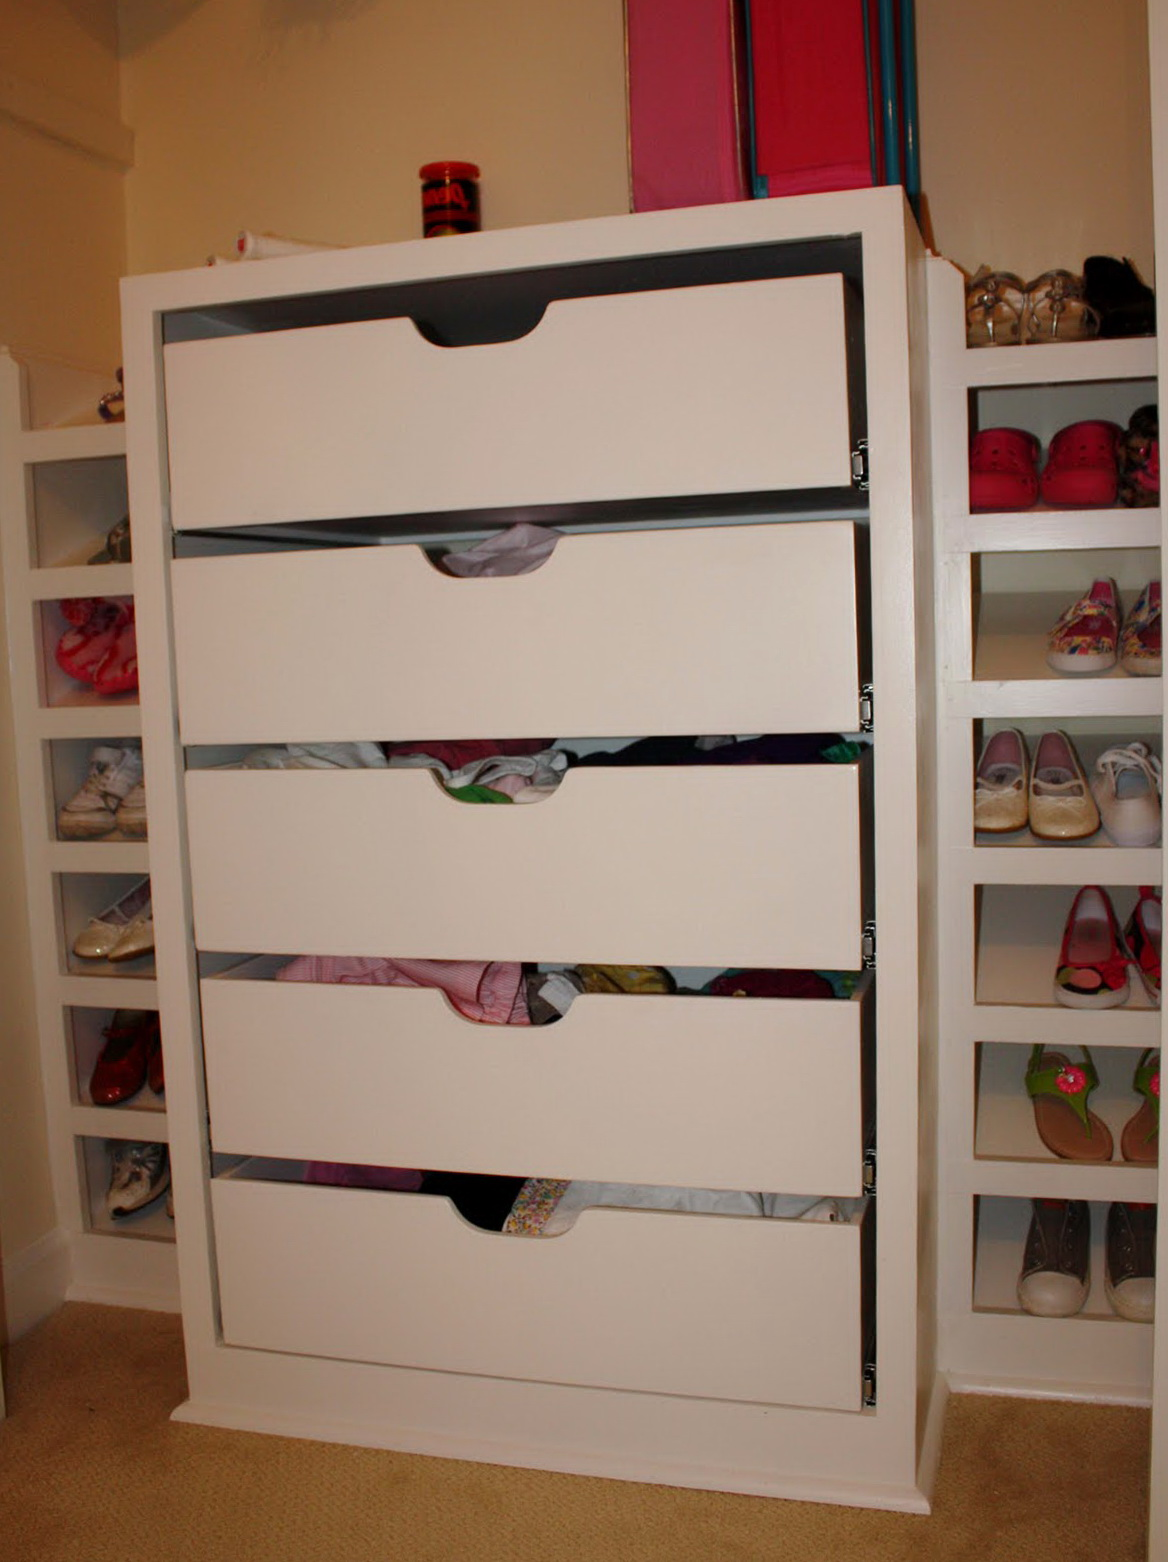 Hanging Closet Organizers With Drawers Home Design Ideas